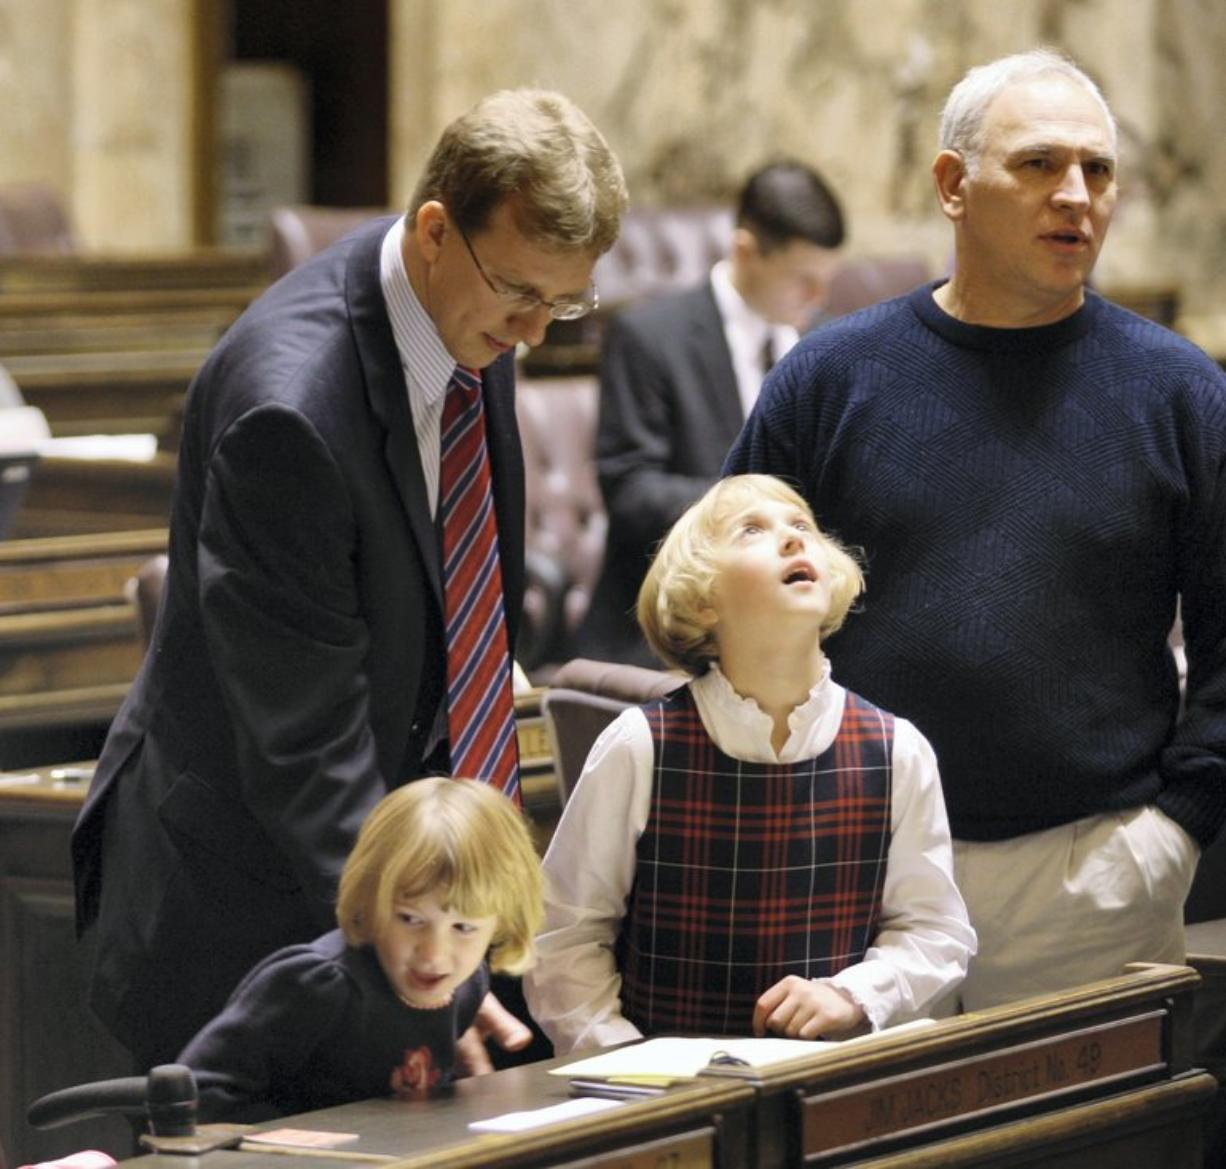 Rep. Jim Jacks, D-Vancouver, shows his daughters, Sara, 5, left, and Hannah, 8, around his desk on the House floor on the opening day of the 2009 session of the Washington Legislature at the Capitol in Olympia.